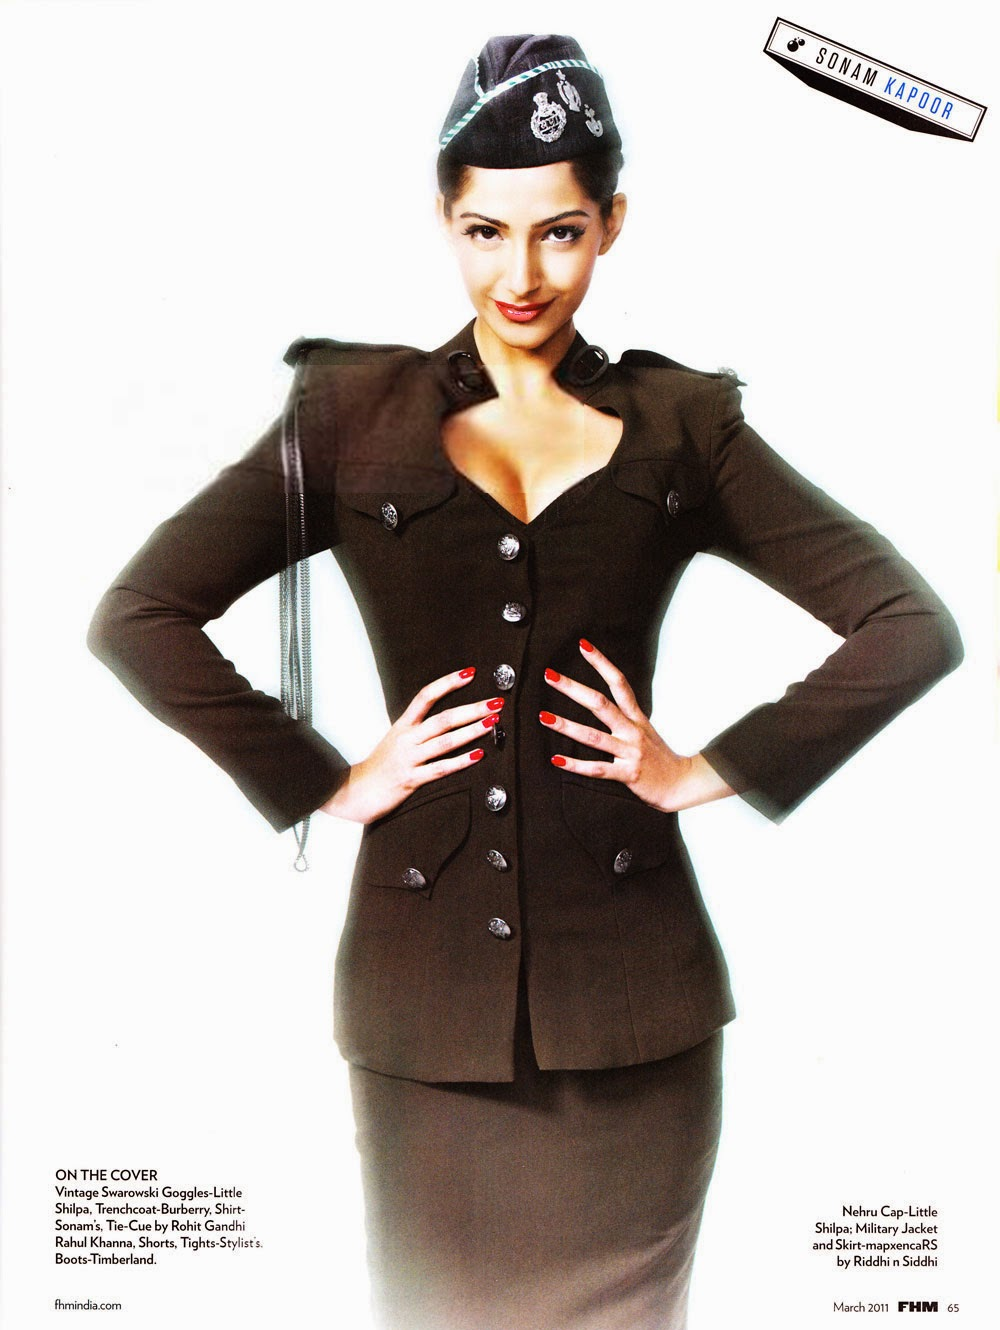 Hot Sonam Kapoor in classy pilot uniform